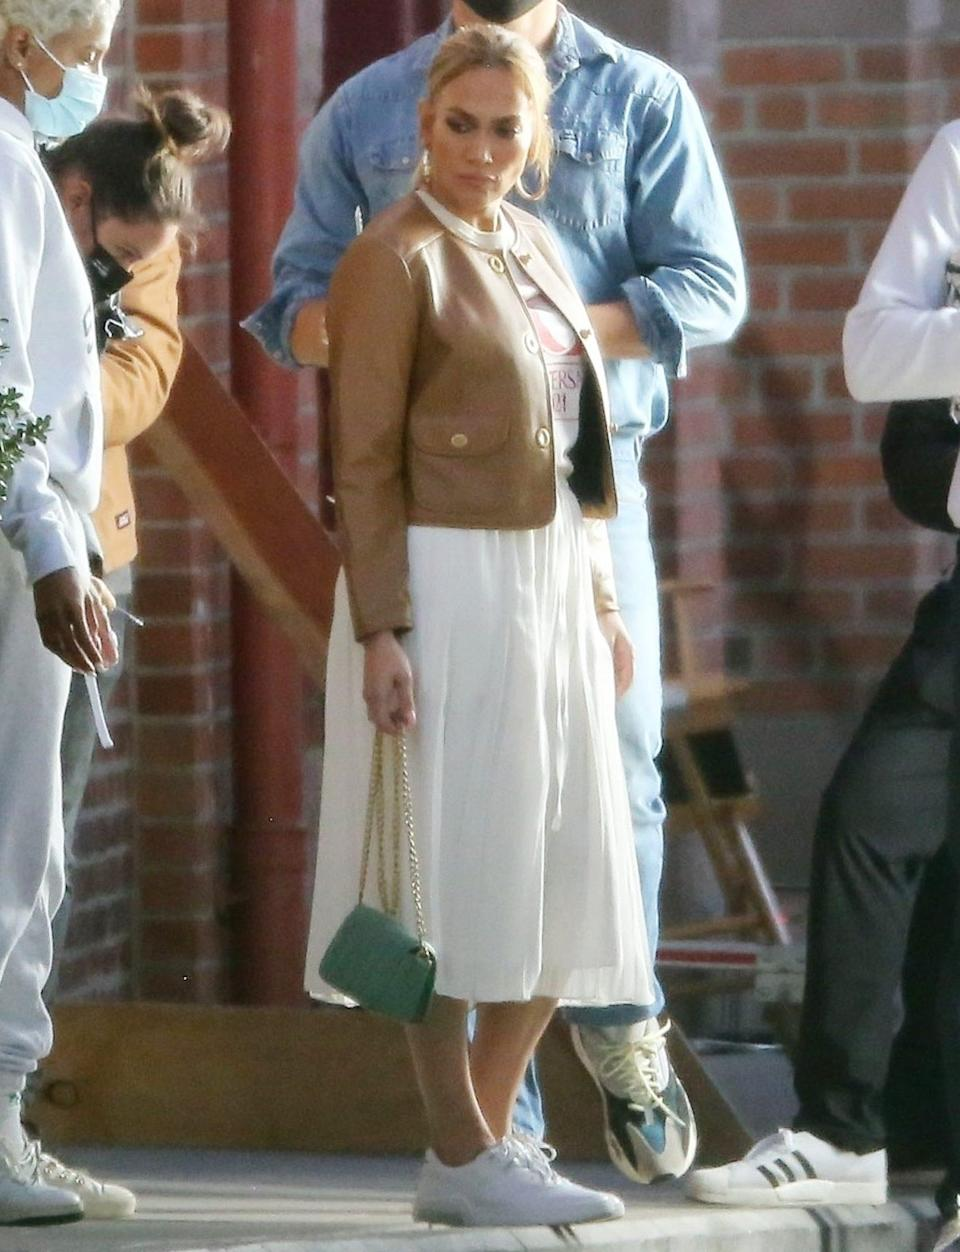 <p>Jennifer Lopez is seen in a leather jacket, a white dress and matching sneakers on the set of a photo shoot in L.A. on Wednesday.</p>